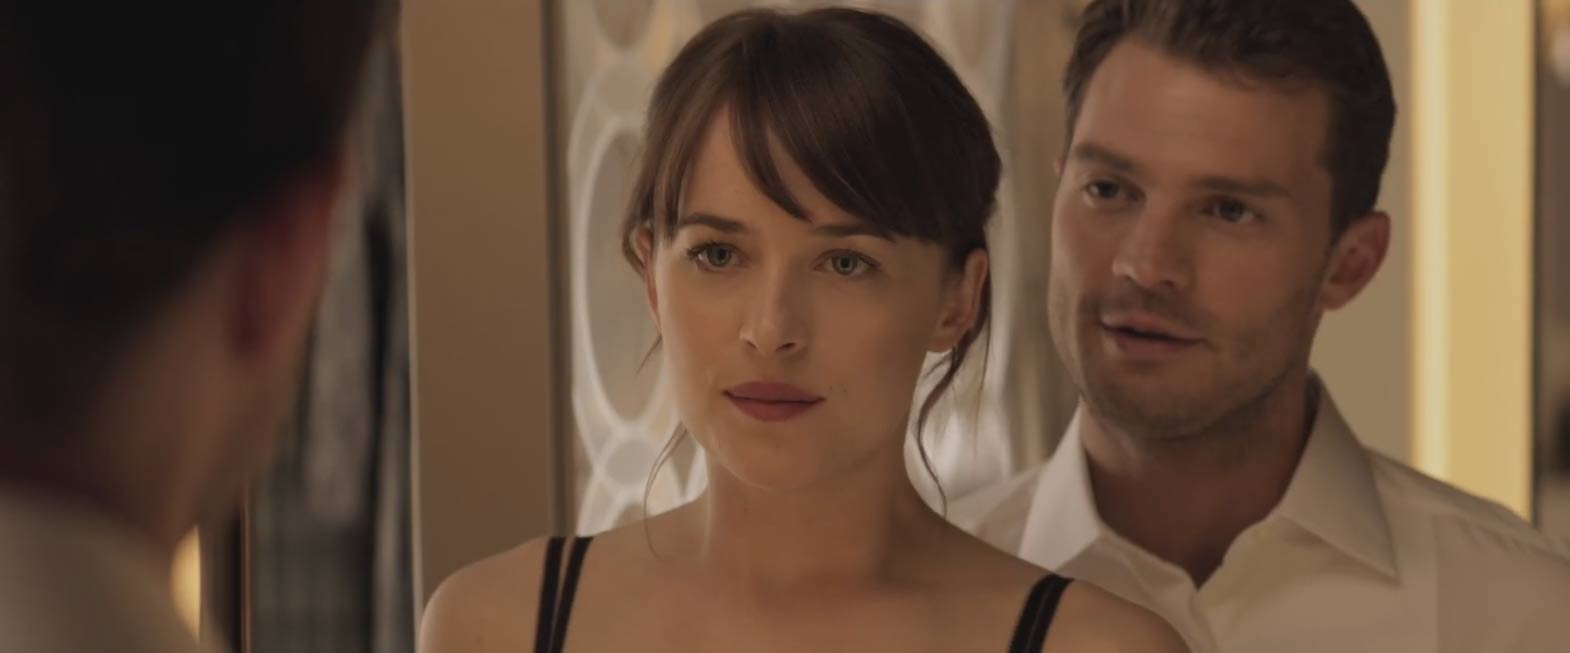 Fifty Shades Darker Trailer Screen Shot 1